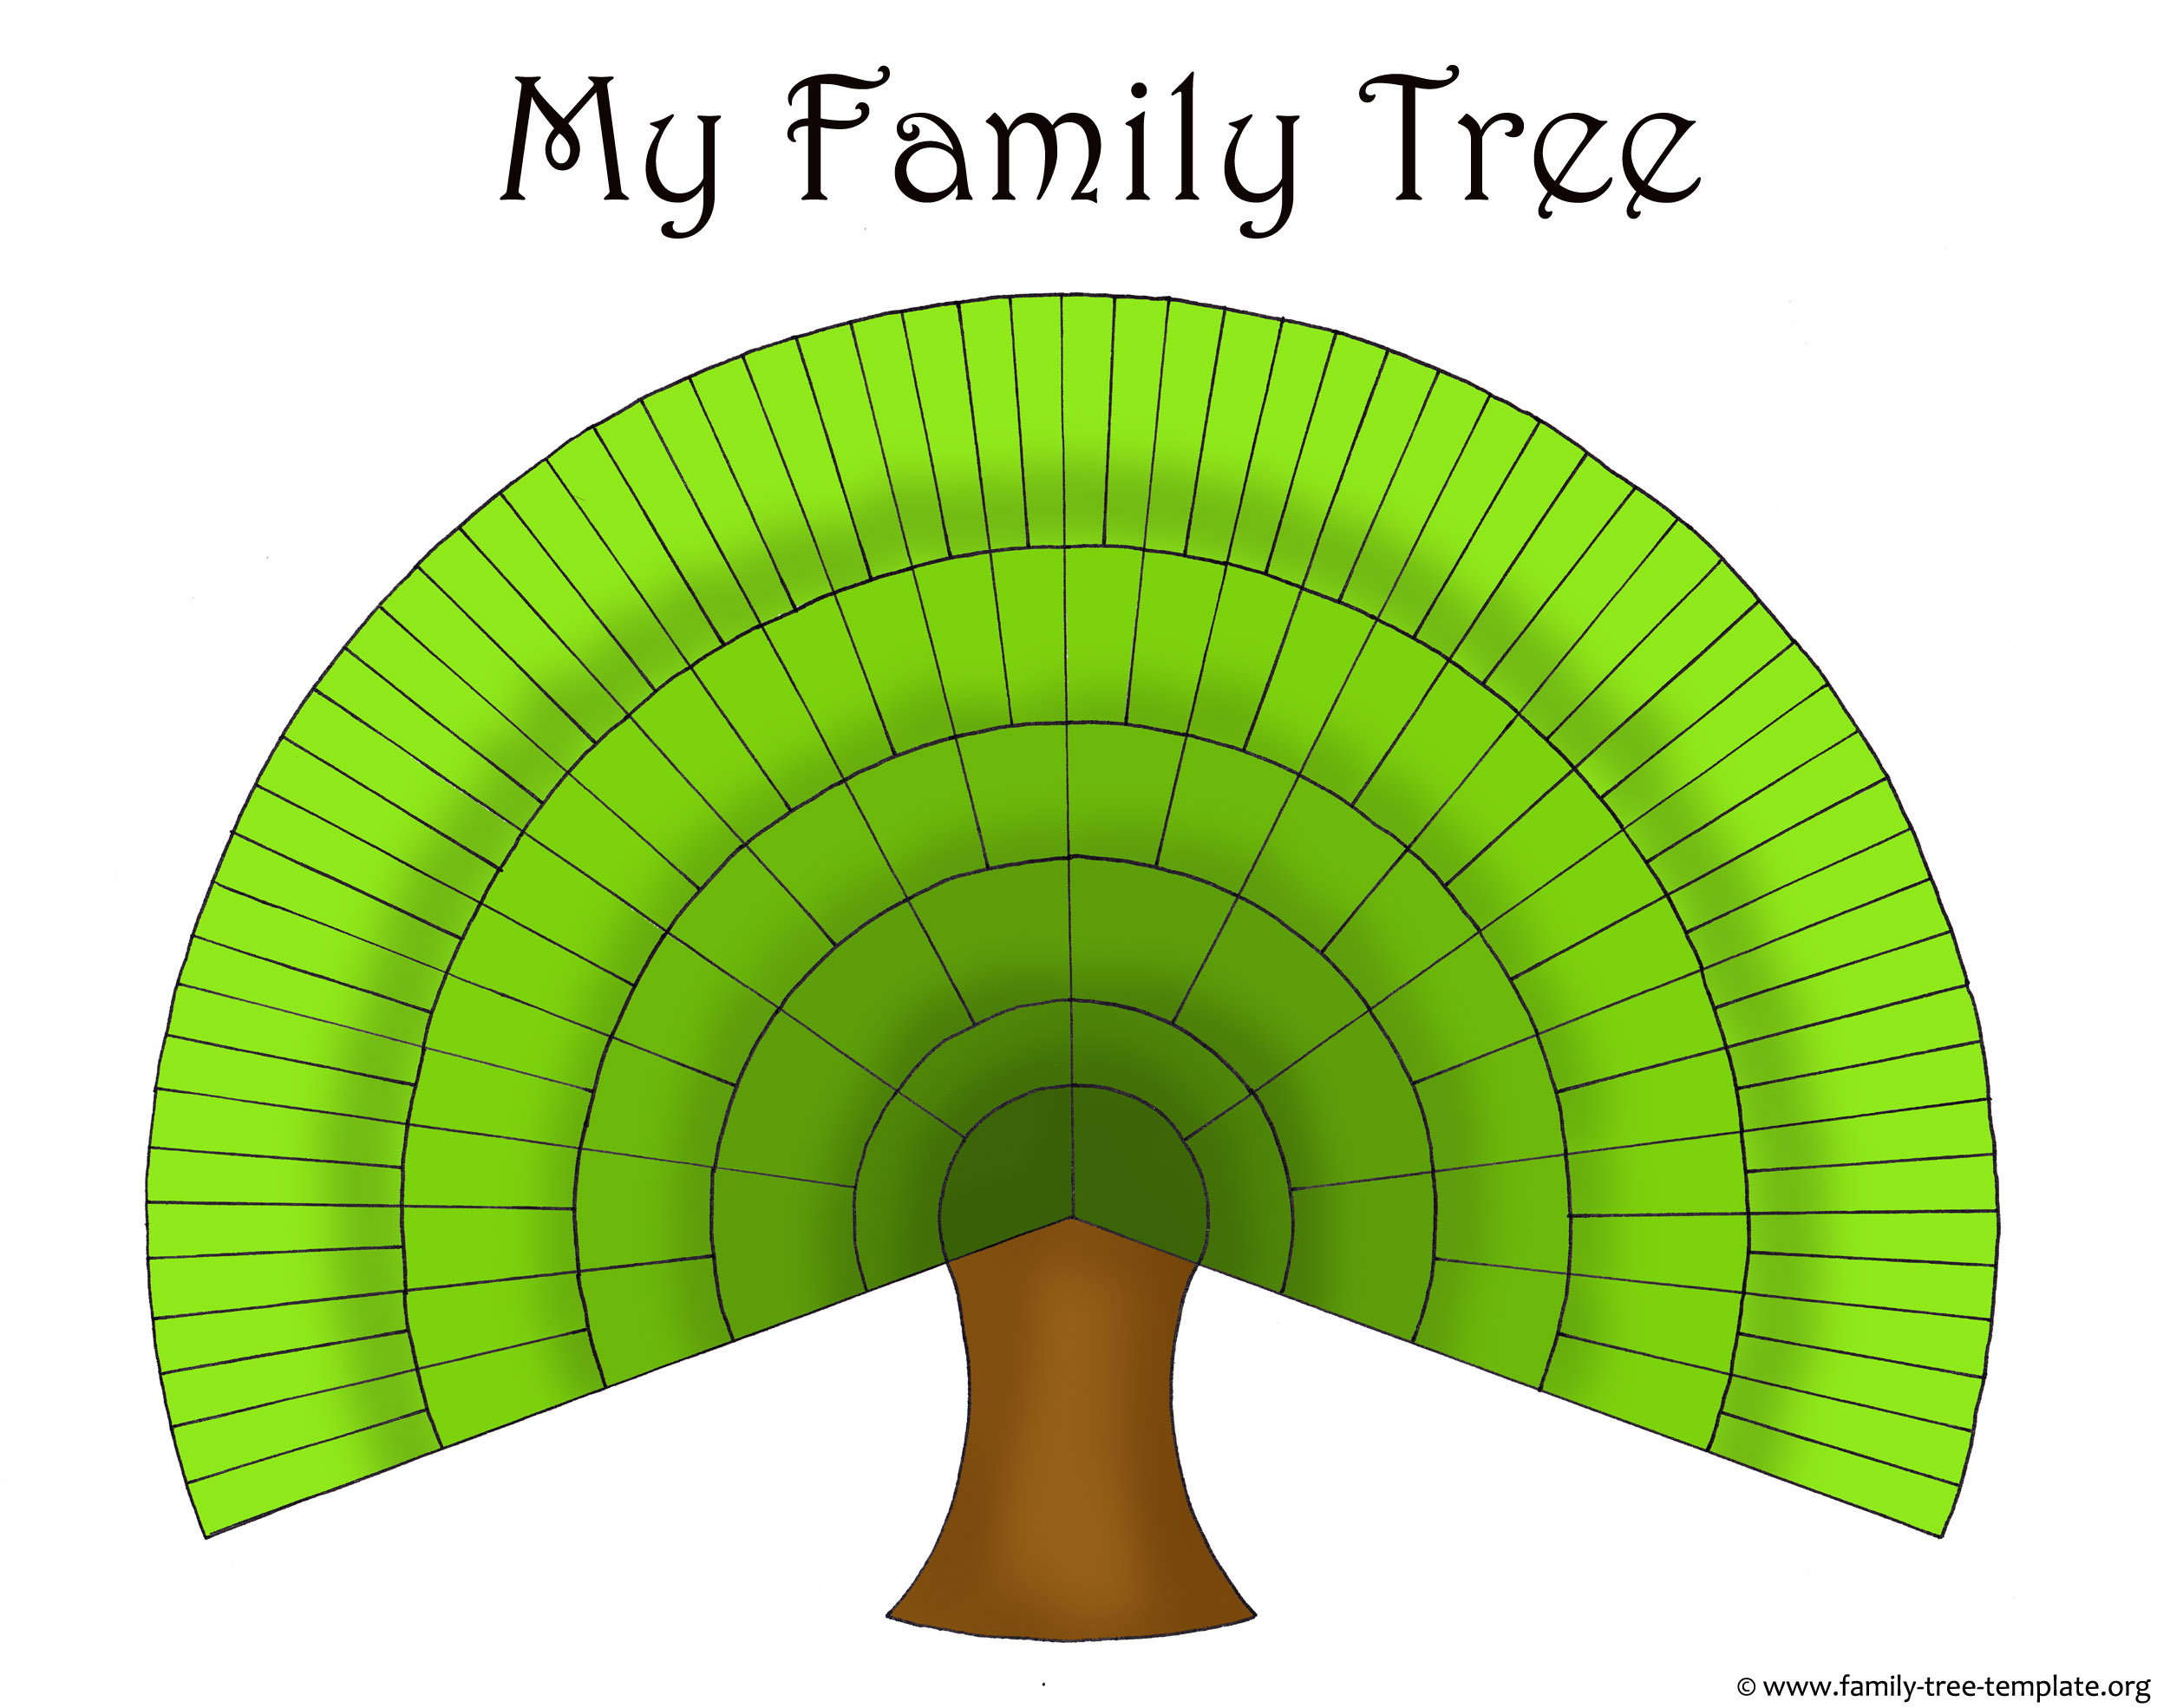 Blank Family Trees Templates and Free Genealogy Graphics | Family ...